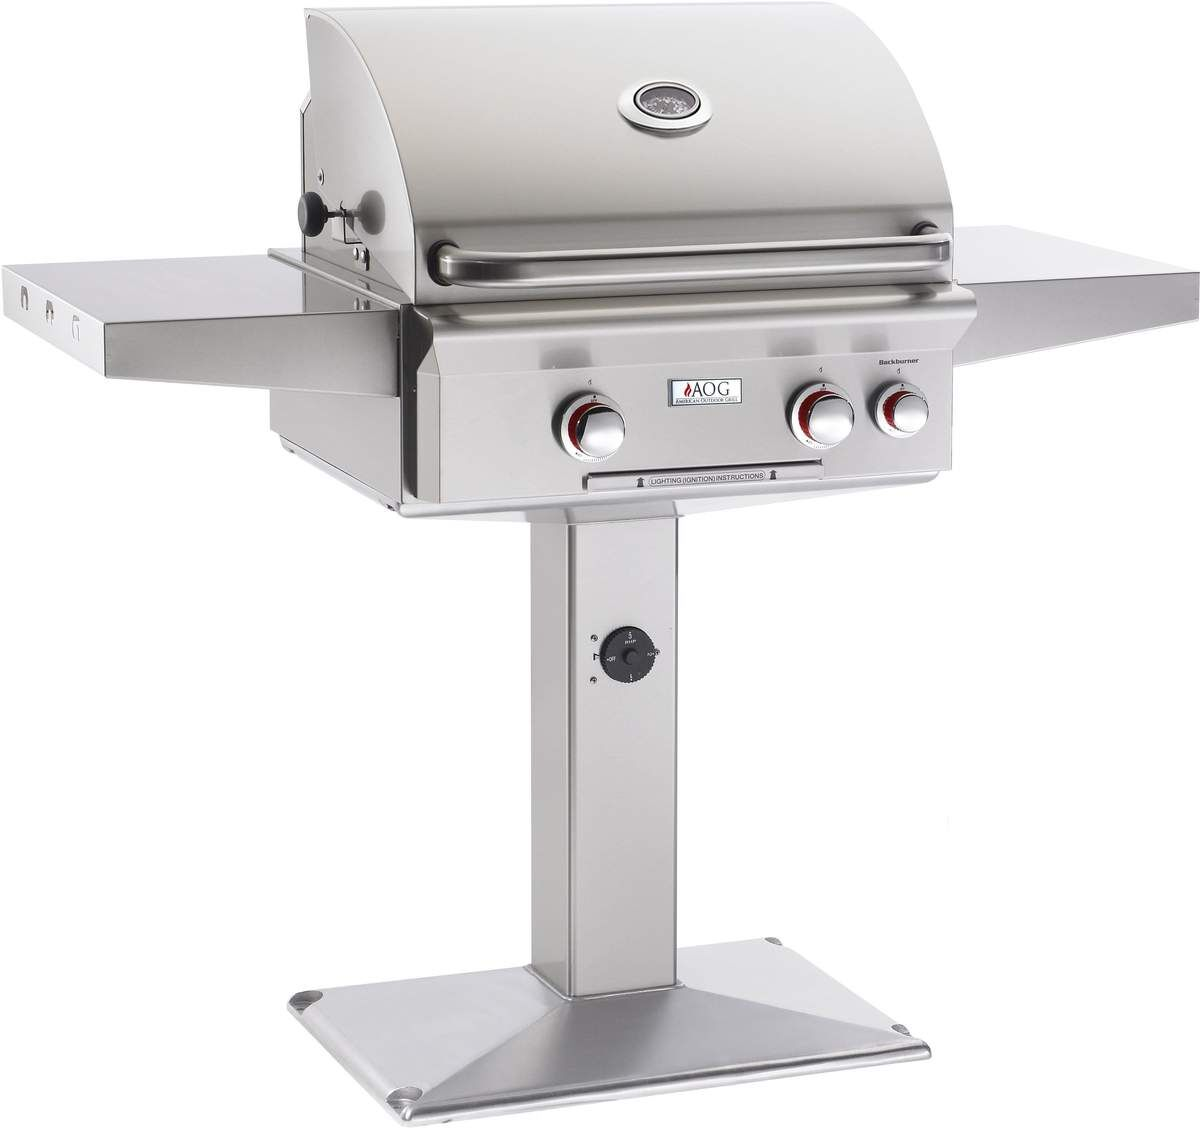 Grill succulent and tasty dishes with the American Outdoor Grill T Series Post Mount with Base Grill today from Flame Authority at https://t.co/o6wkuPsovC. Get yours now!  #aog #americanoutdoorgrill #grilling ##grillmaster #outdoorgrills #outdoorkitchens #outdoorliving #barbecue https://t.co/9meHR8x5Qw